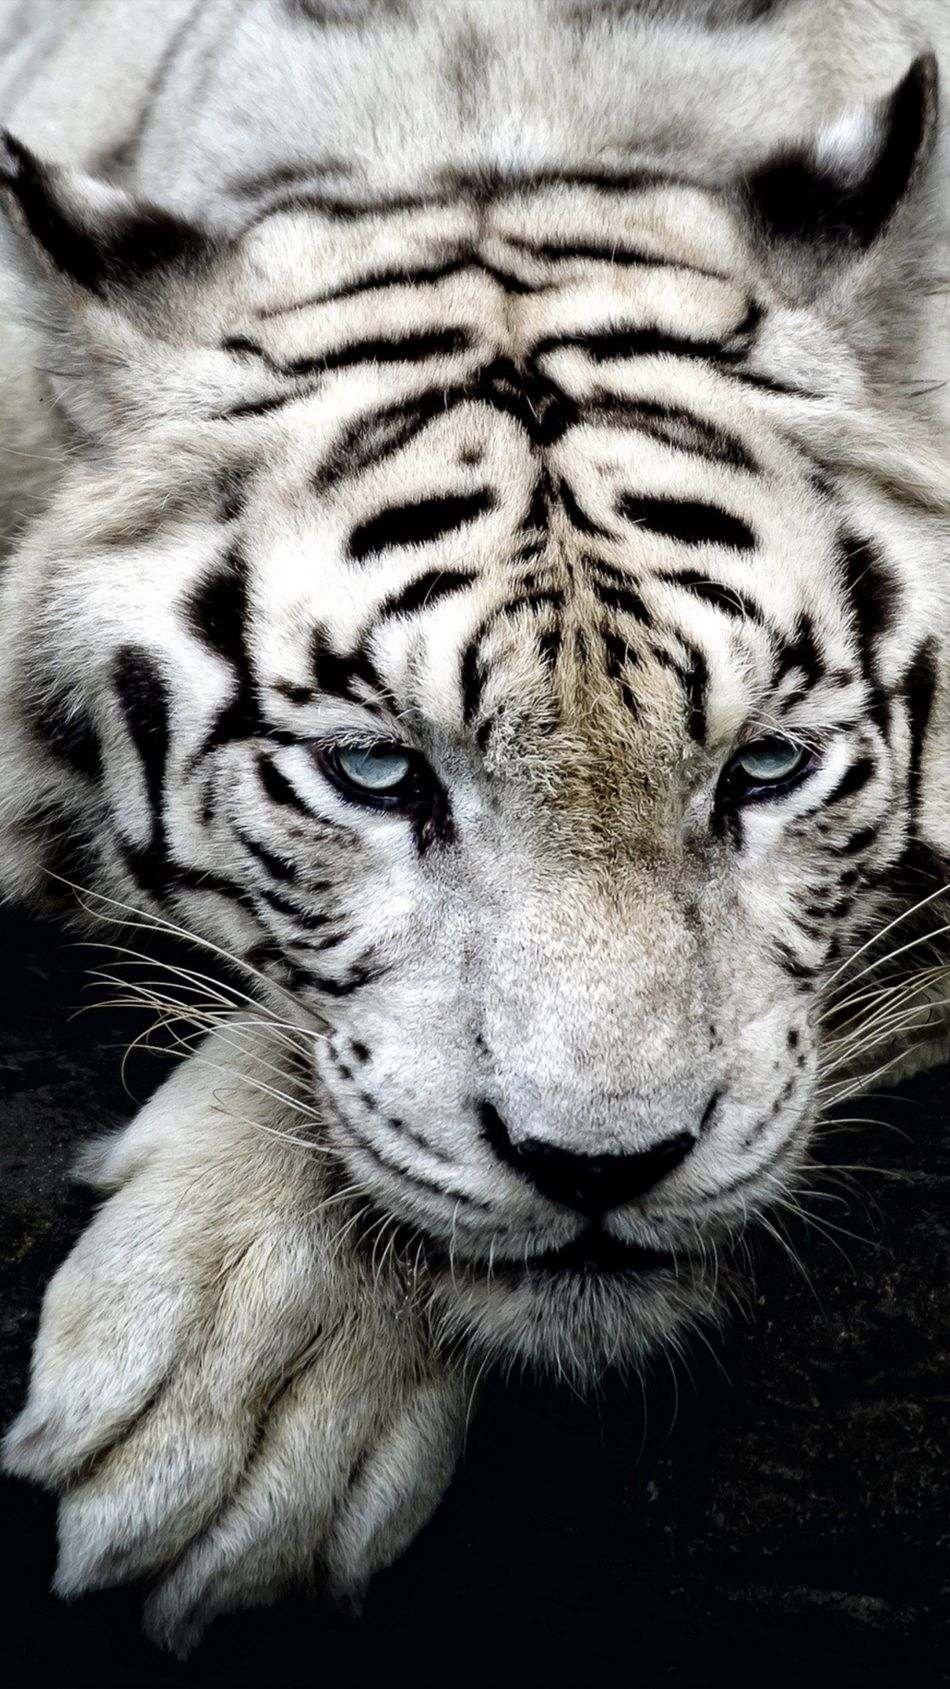 White Tiger Wildlife 4k Ultra Hd Mobile Wallpaper Animals Beautiful Wild Animal Wallpaper Pet Tiger